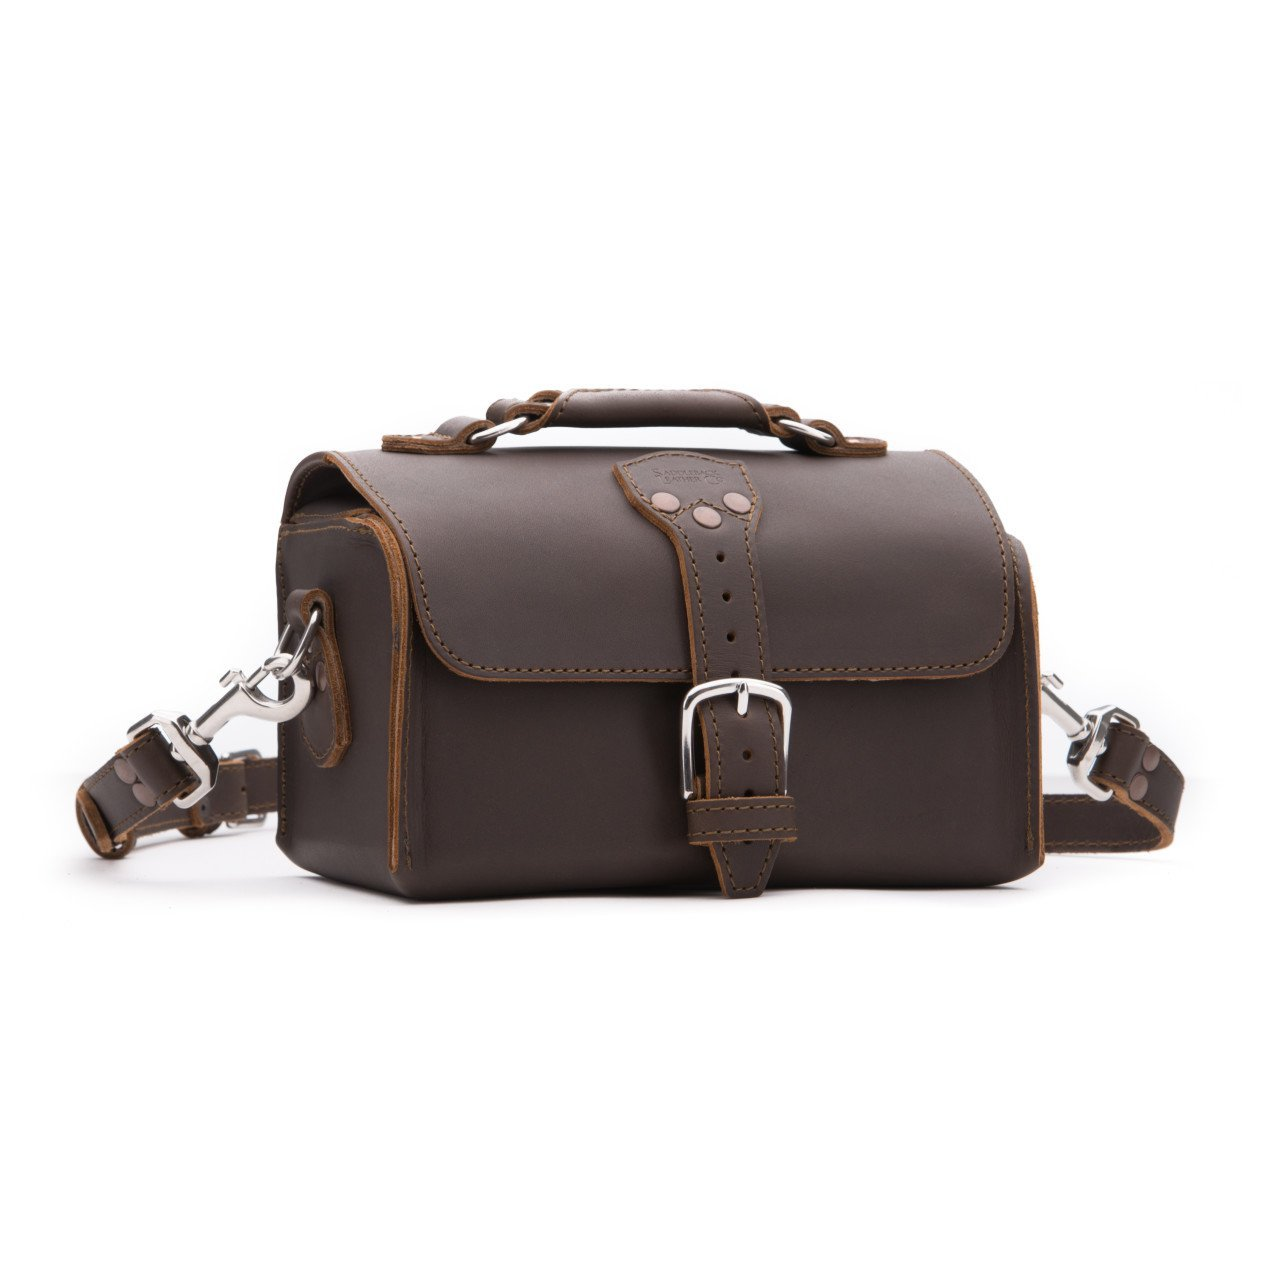 Saddleback Leather Travel Case in Dark Coffee Brown by Saddleback Leather Co.